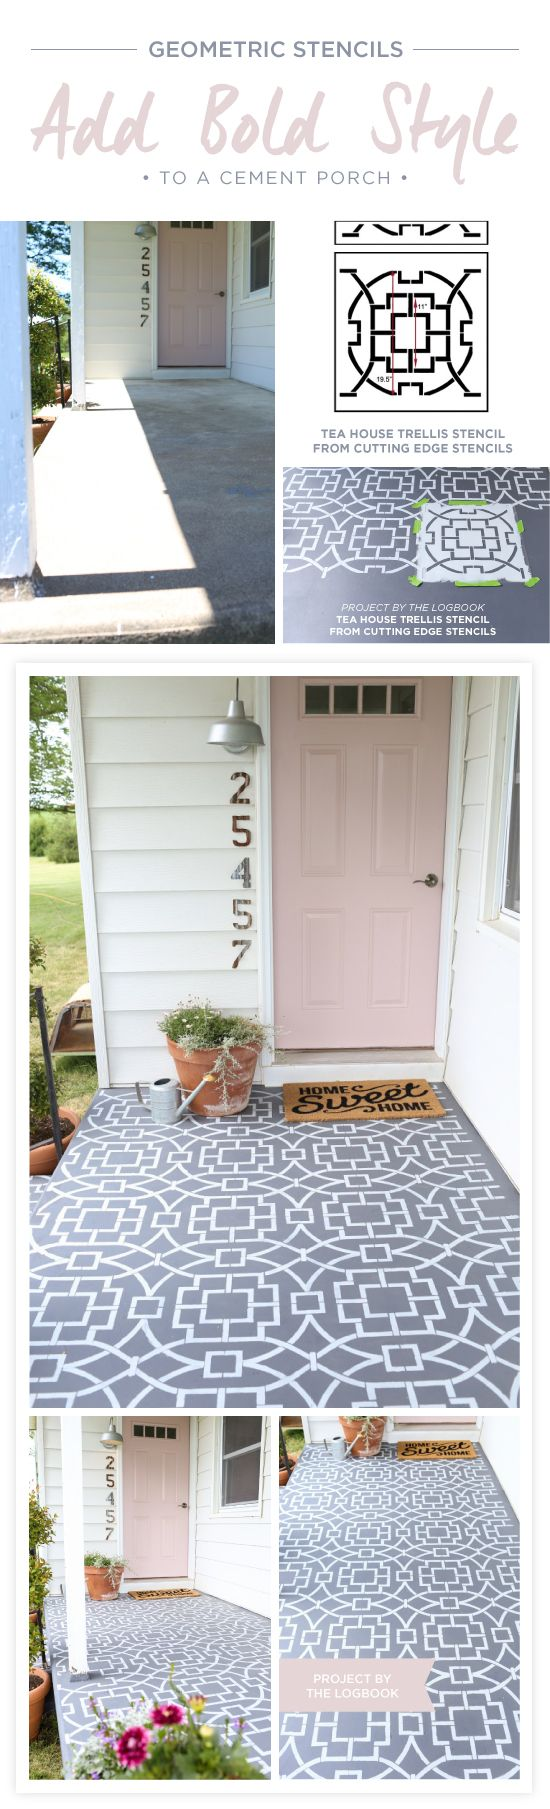 24 awesome diy porch projects stencils add color and style to a drab concrete porch good morning my cutting edge stencils friends a front porch can be a favorite spot to kick back and solutioingenieria Choice Image